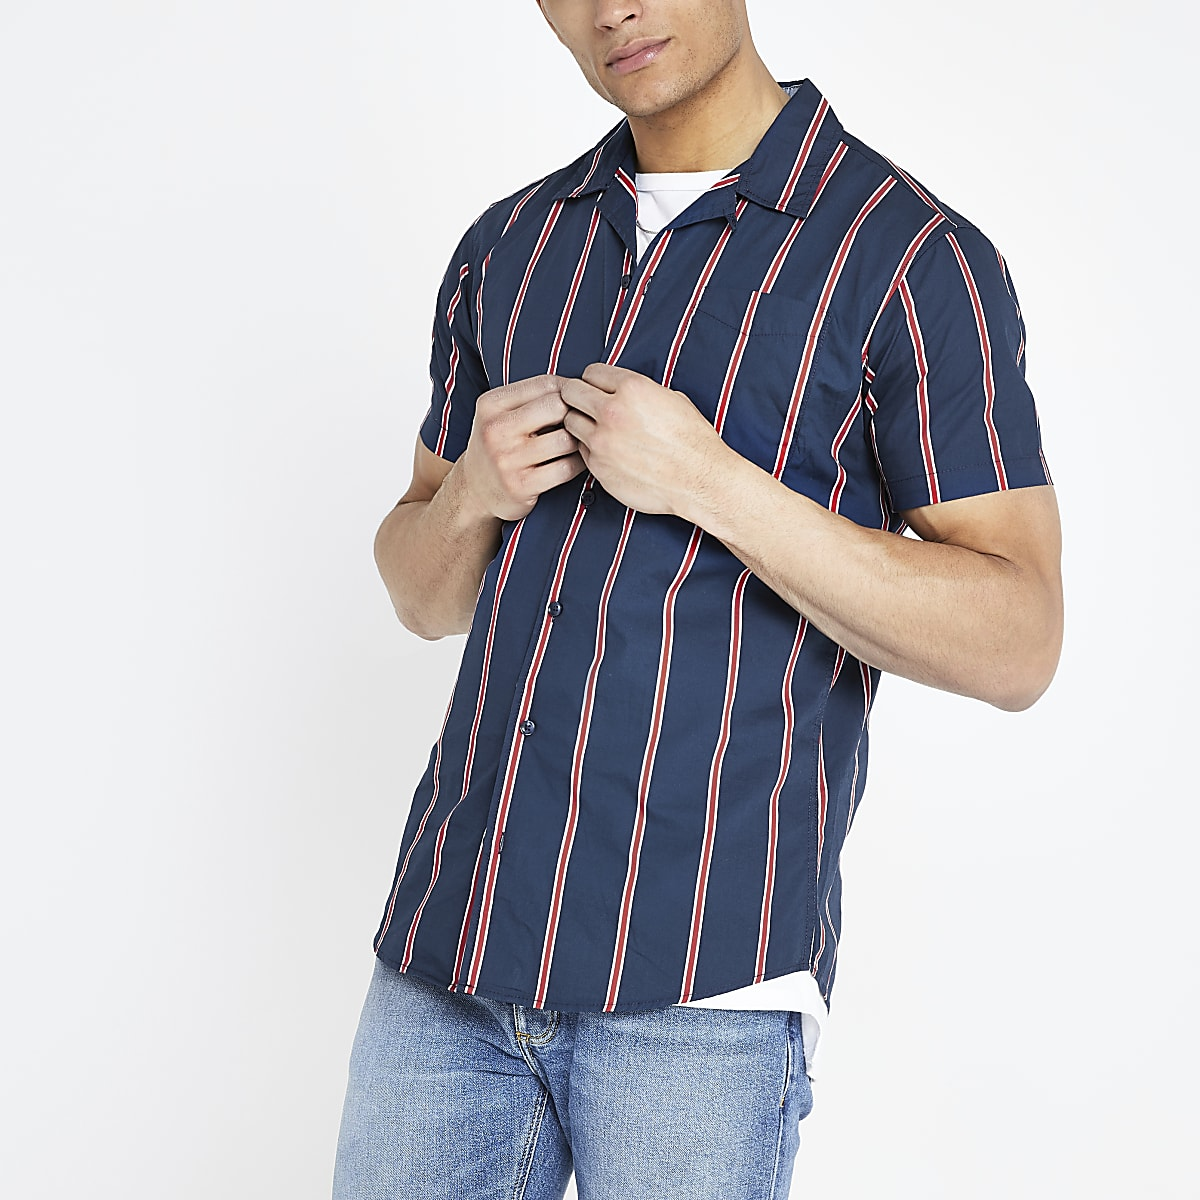 Jack and Jones navy stripe short sleeve shirt